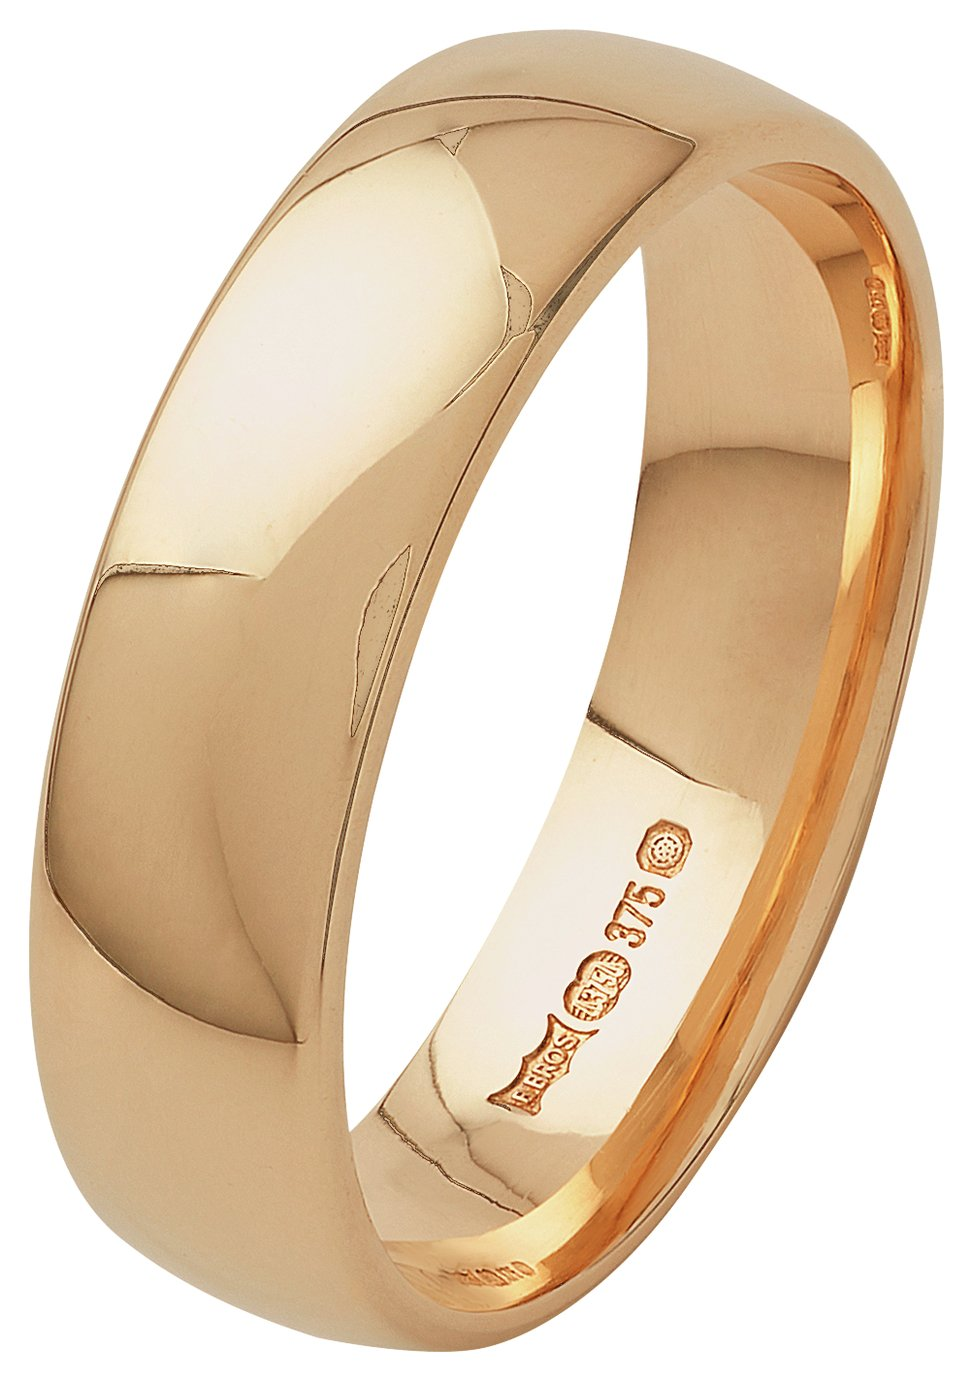 Mens wedding rings and bands Argos